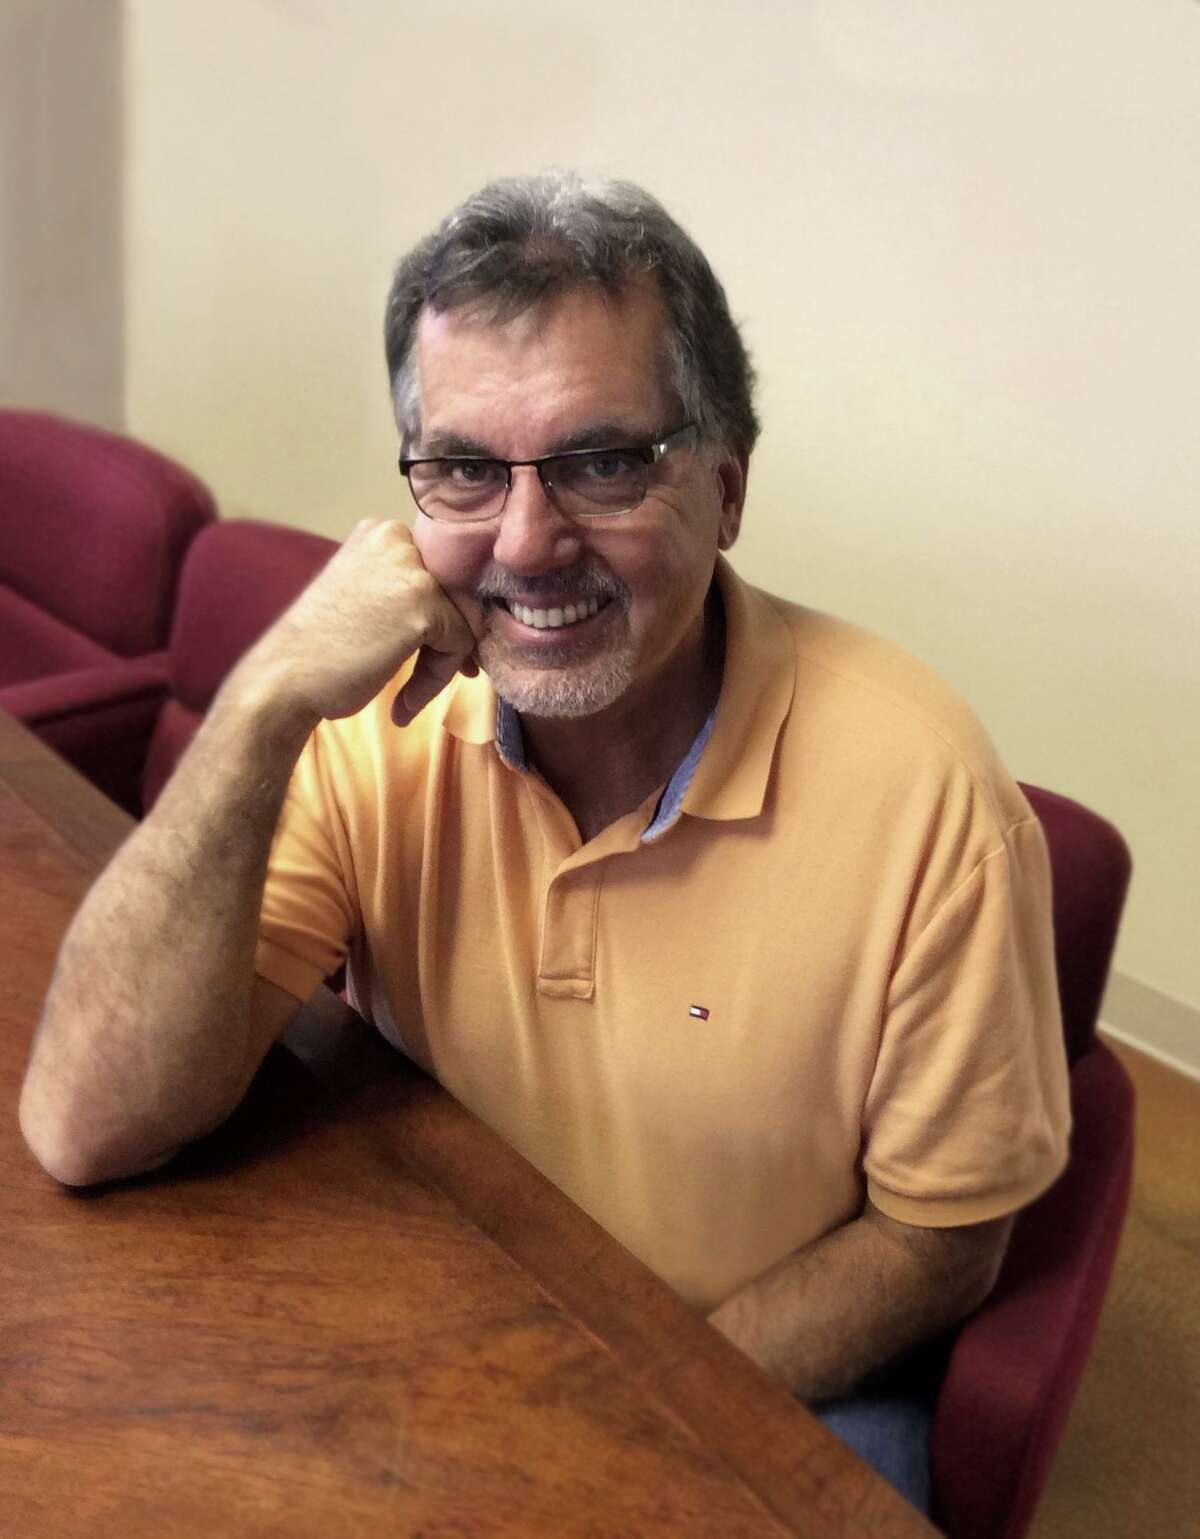 Mark Stoeltje is the founding director of the San Antonio Clubhouse, a nonprofit dedicated to the recovery of men and women diagnosed with serious mental illness.